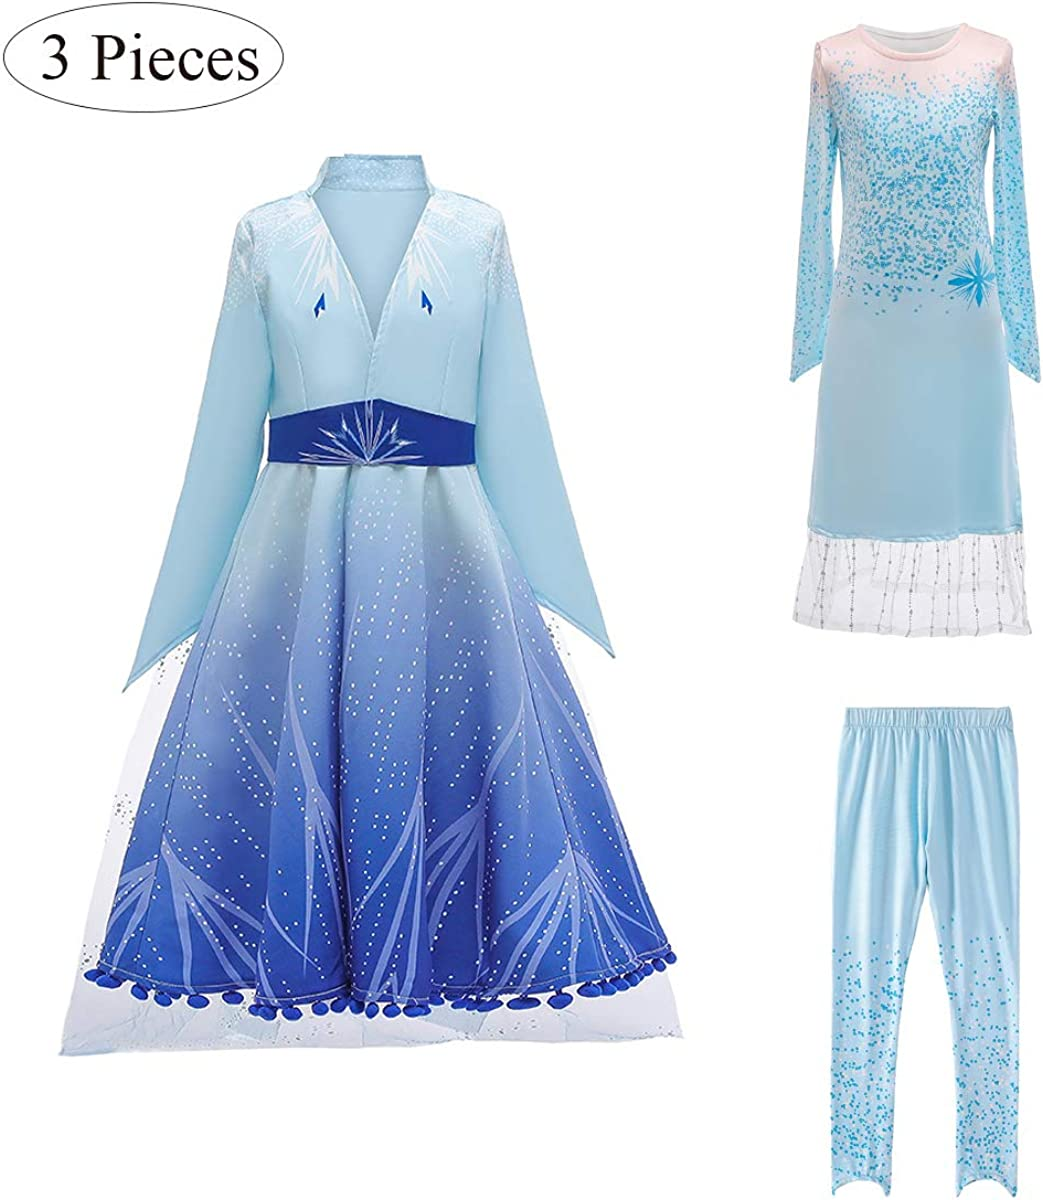 Girls Frozen Inspired Princess Elsa Anna Dress Up Party Costumes